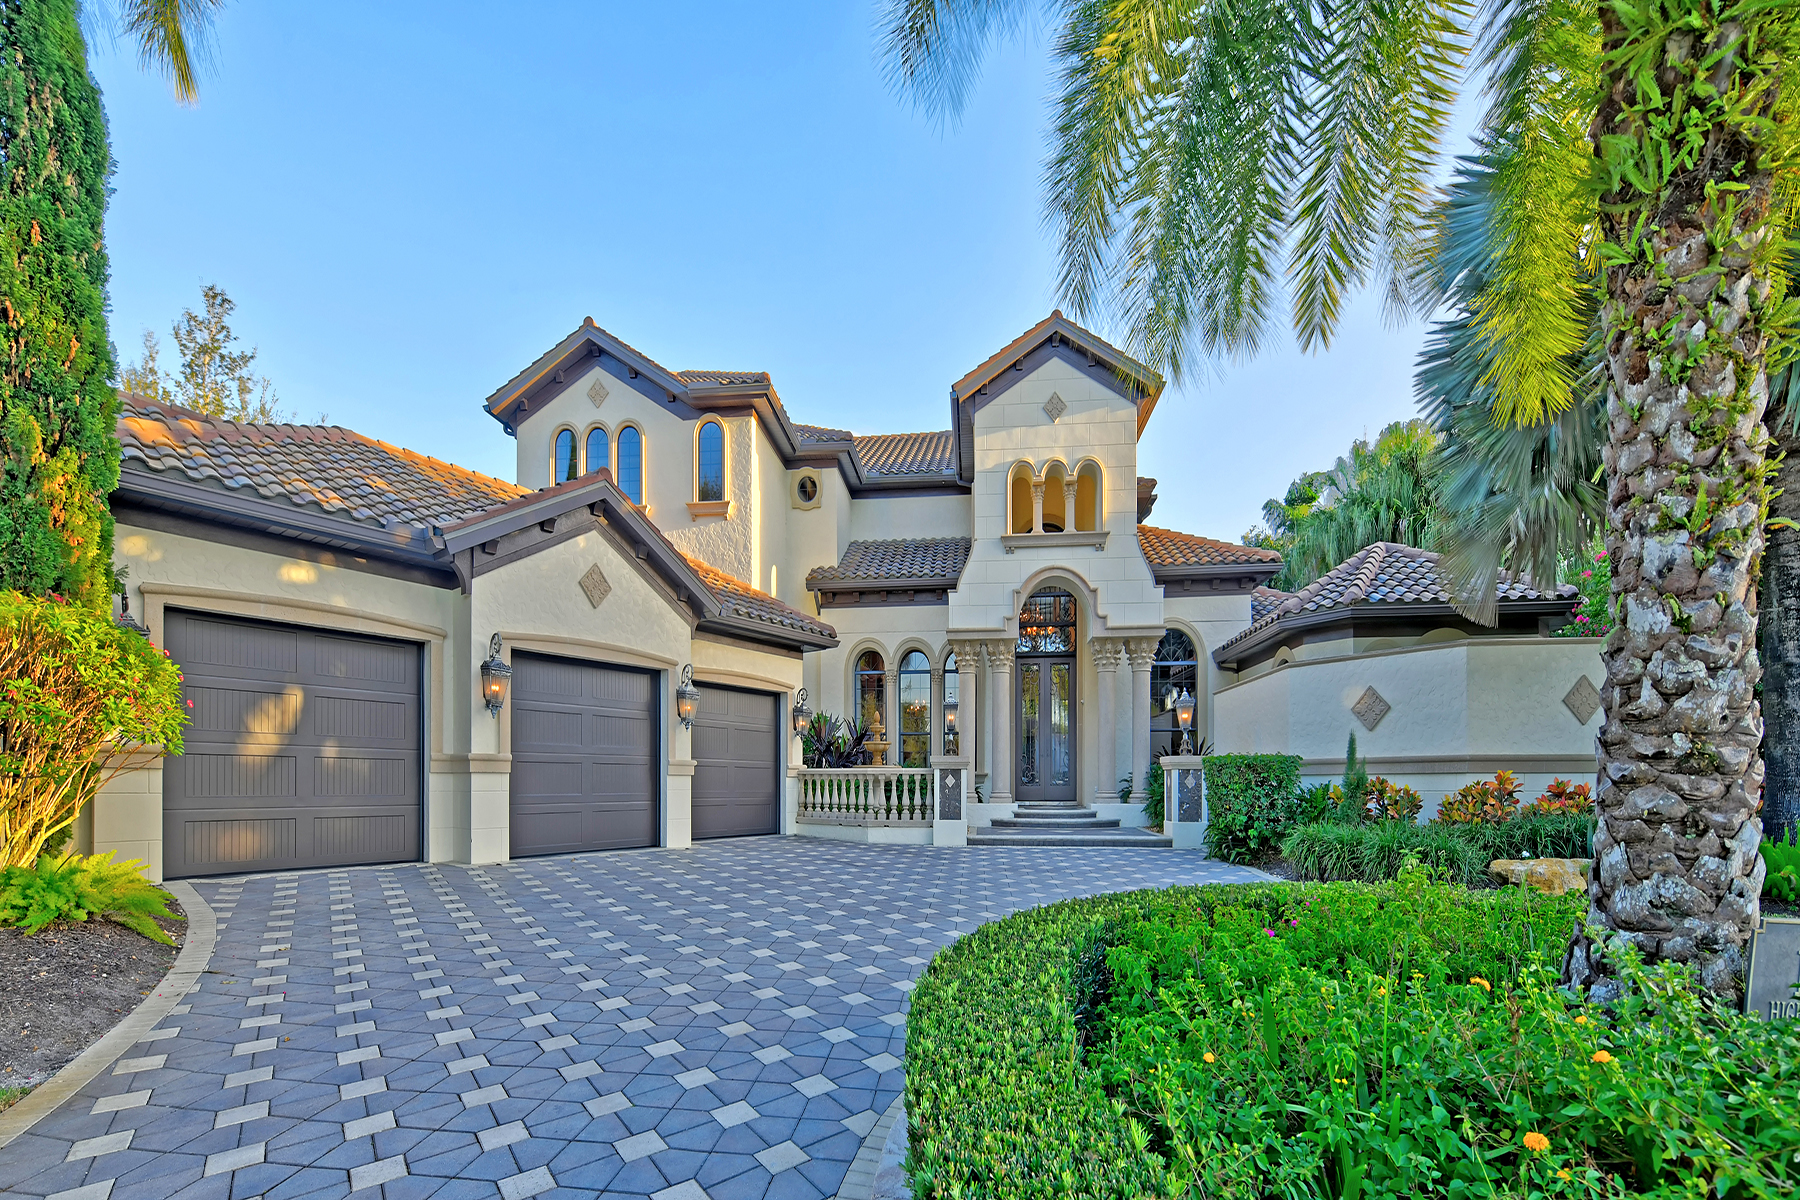 Single Family Homes for Sale at LAKEWOOD RANCH COUNTRY CLUB 12539 Highfield Cir, Lakewood Ranch, Florida 34202 United States